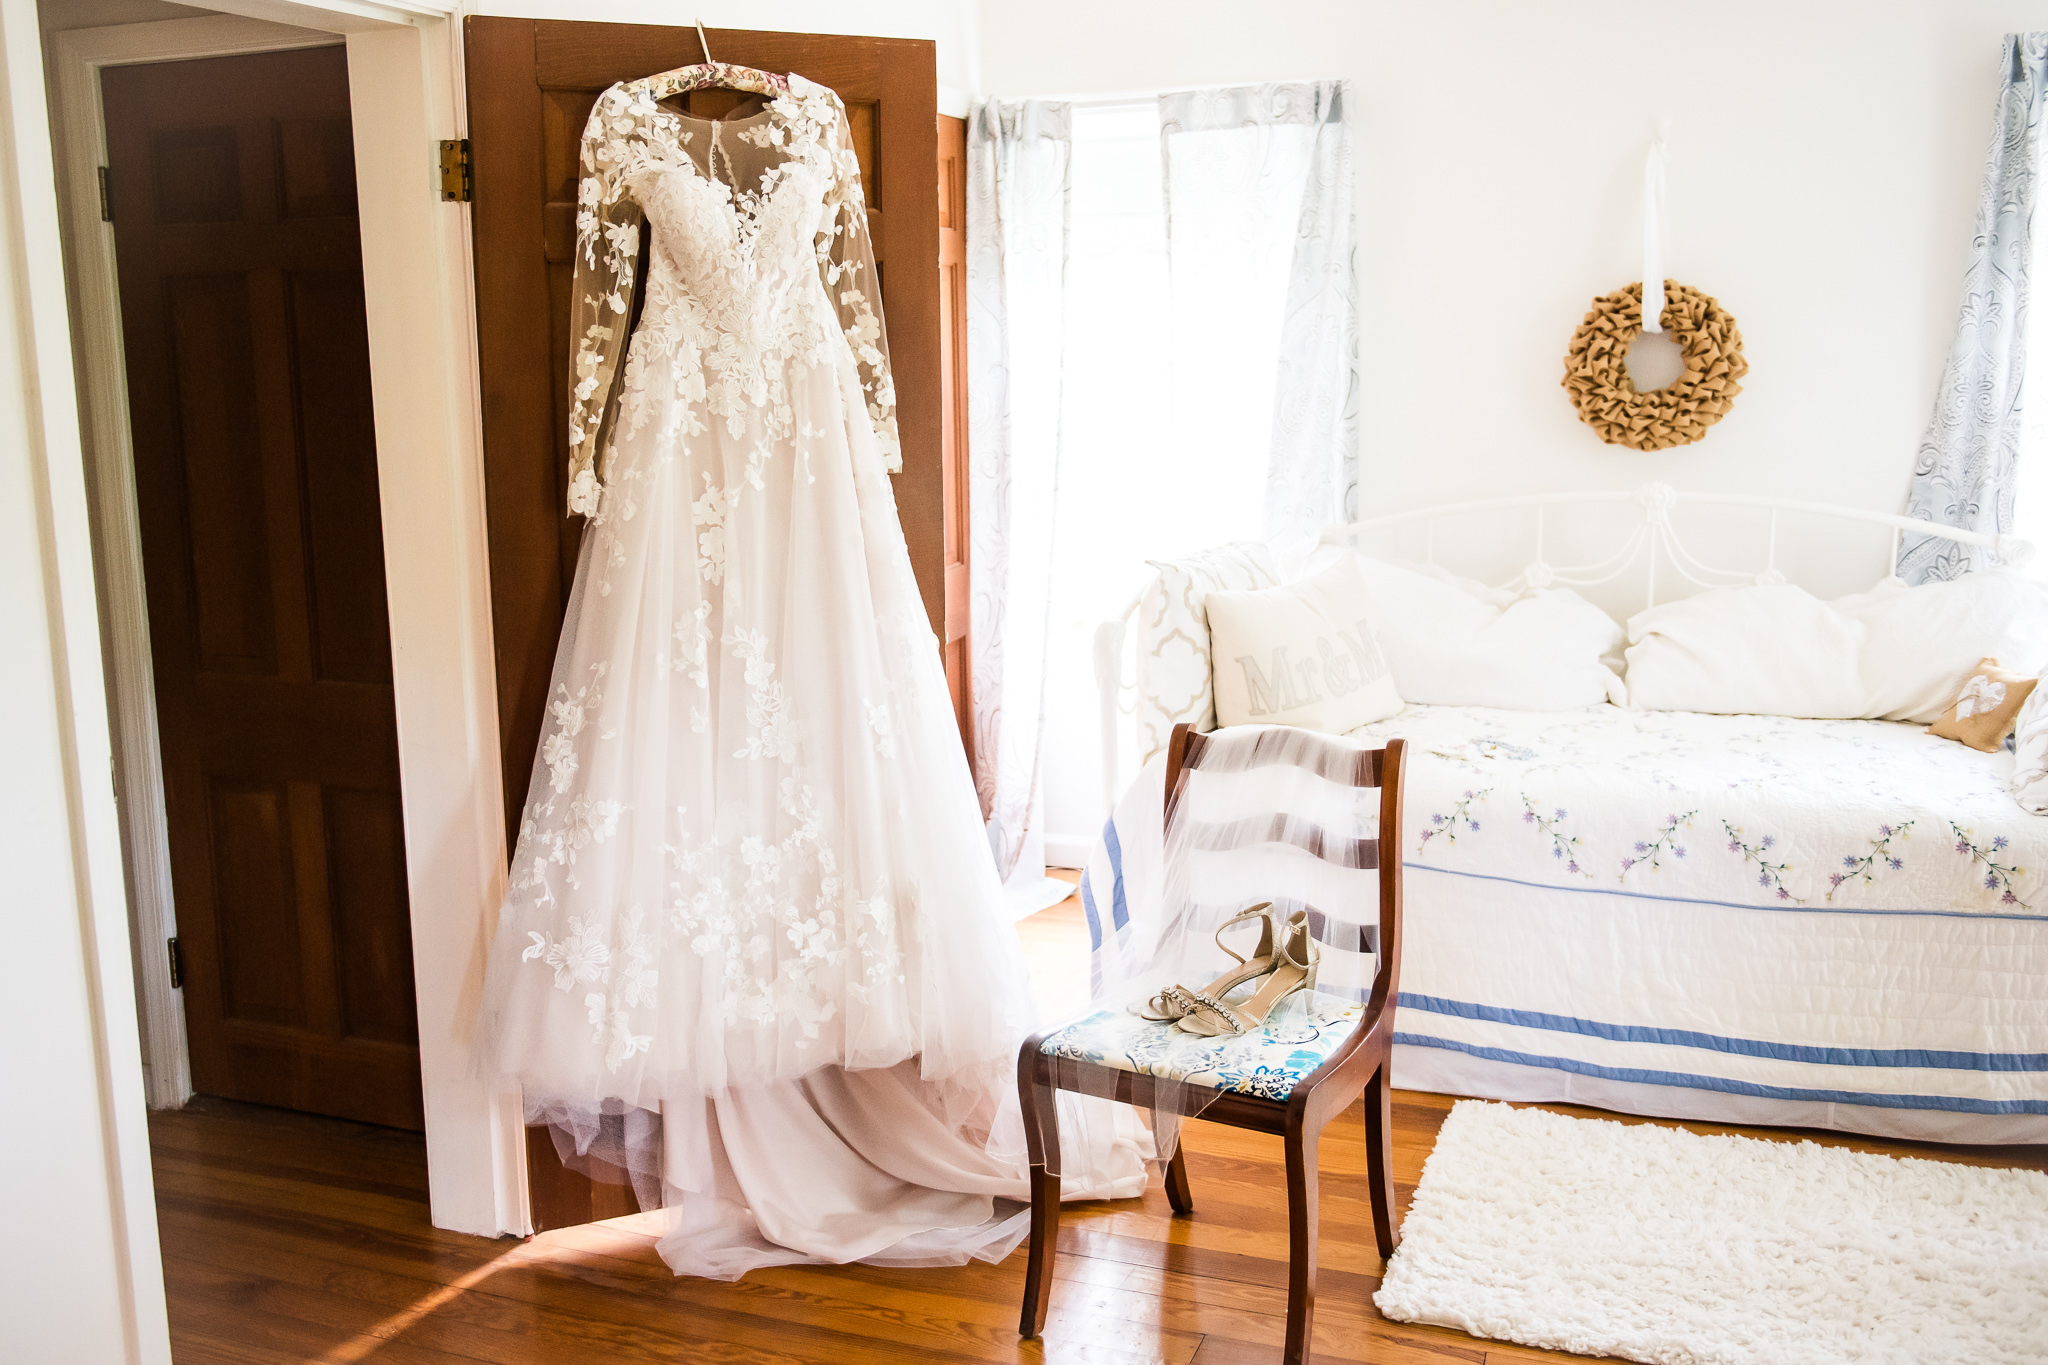 A modest lace wedding dress hanging on the door of the bridal suite at the Barns at Hamilton Station Vineyard in Leesburg, Northern Virginia before a traditional Catholic wedding